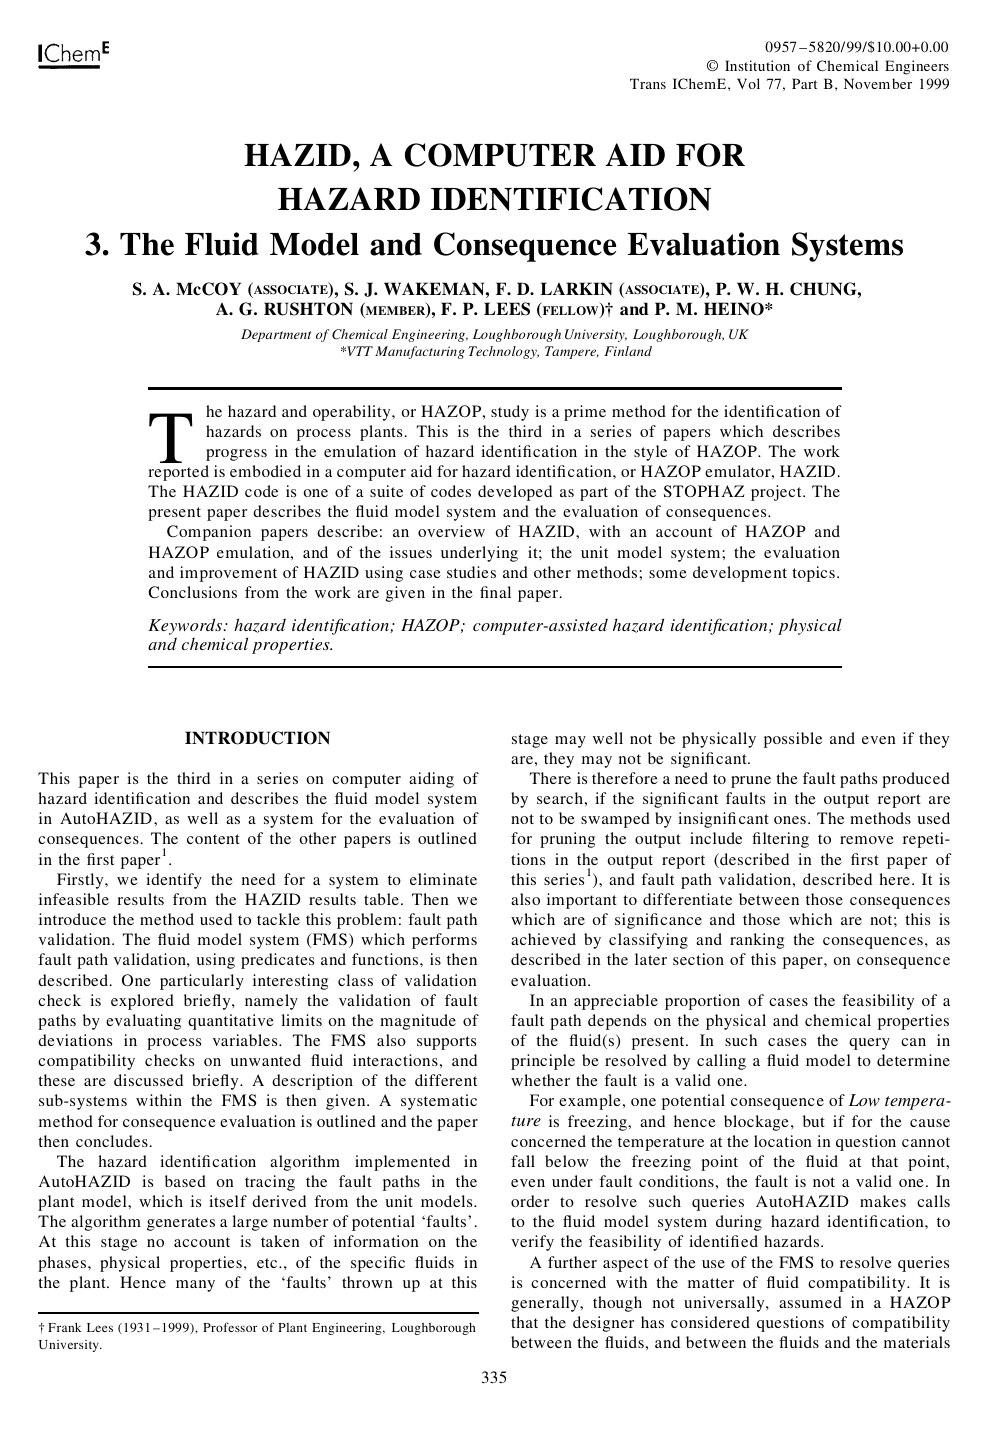 HAZID, A Computer Aid for Hazard Identification – topic of research